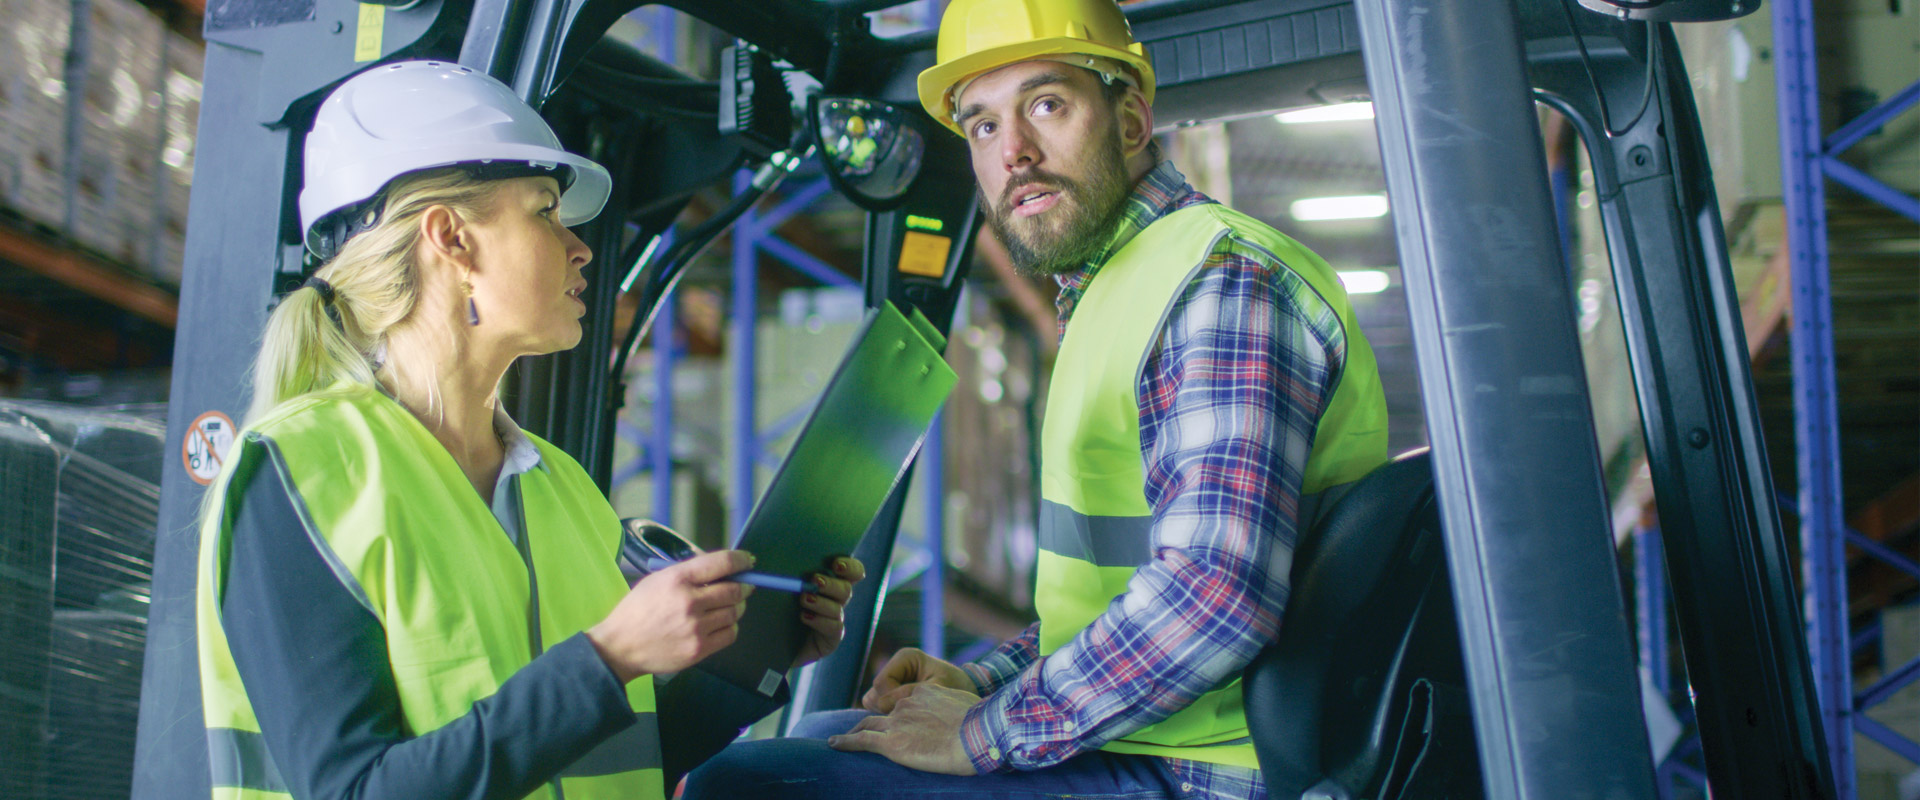 Forklift Operators, General Labourers & Warehouse Associates